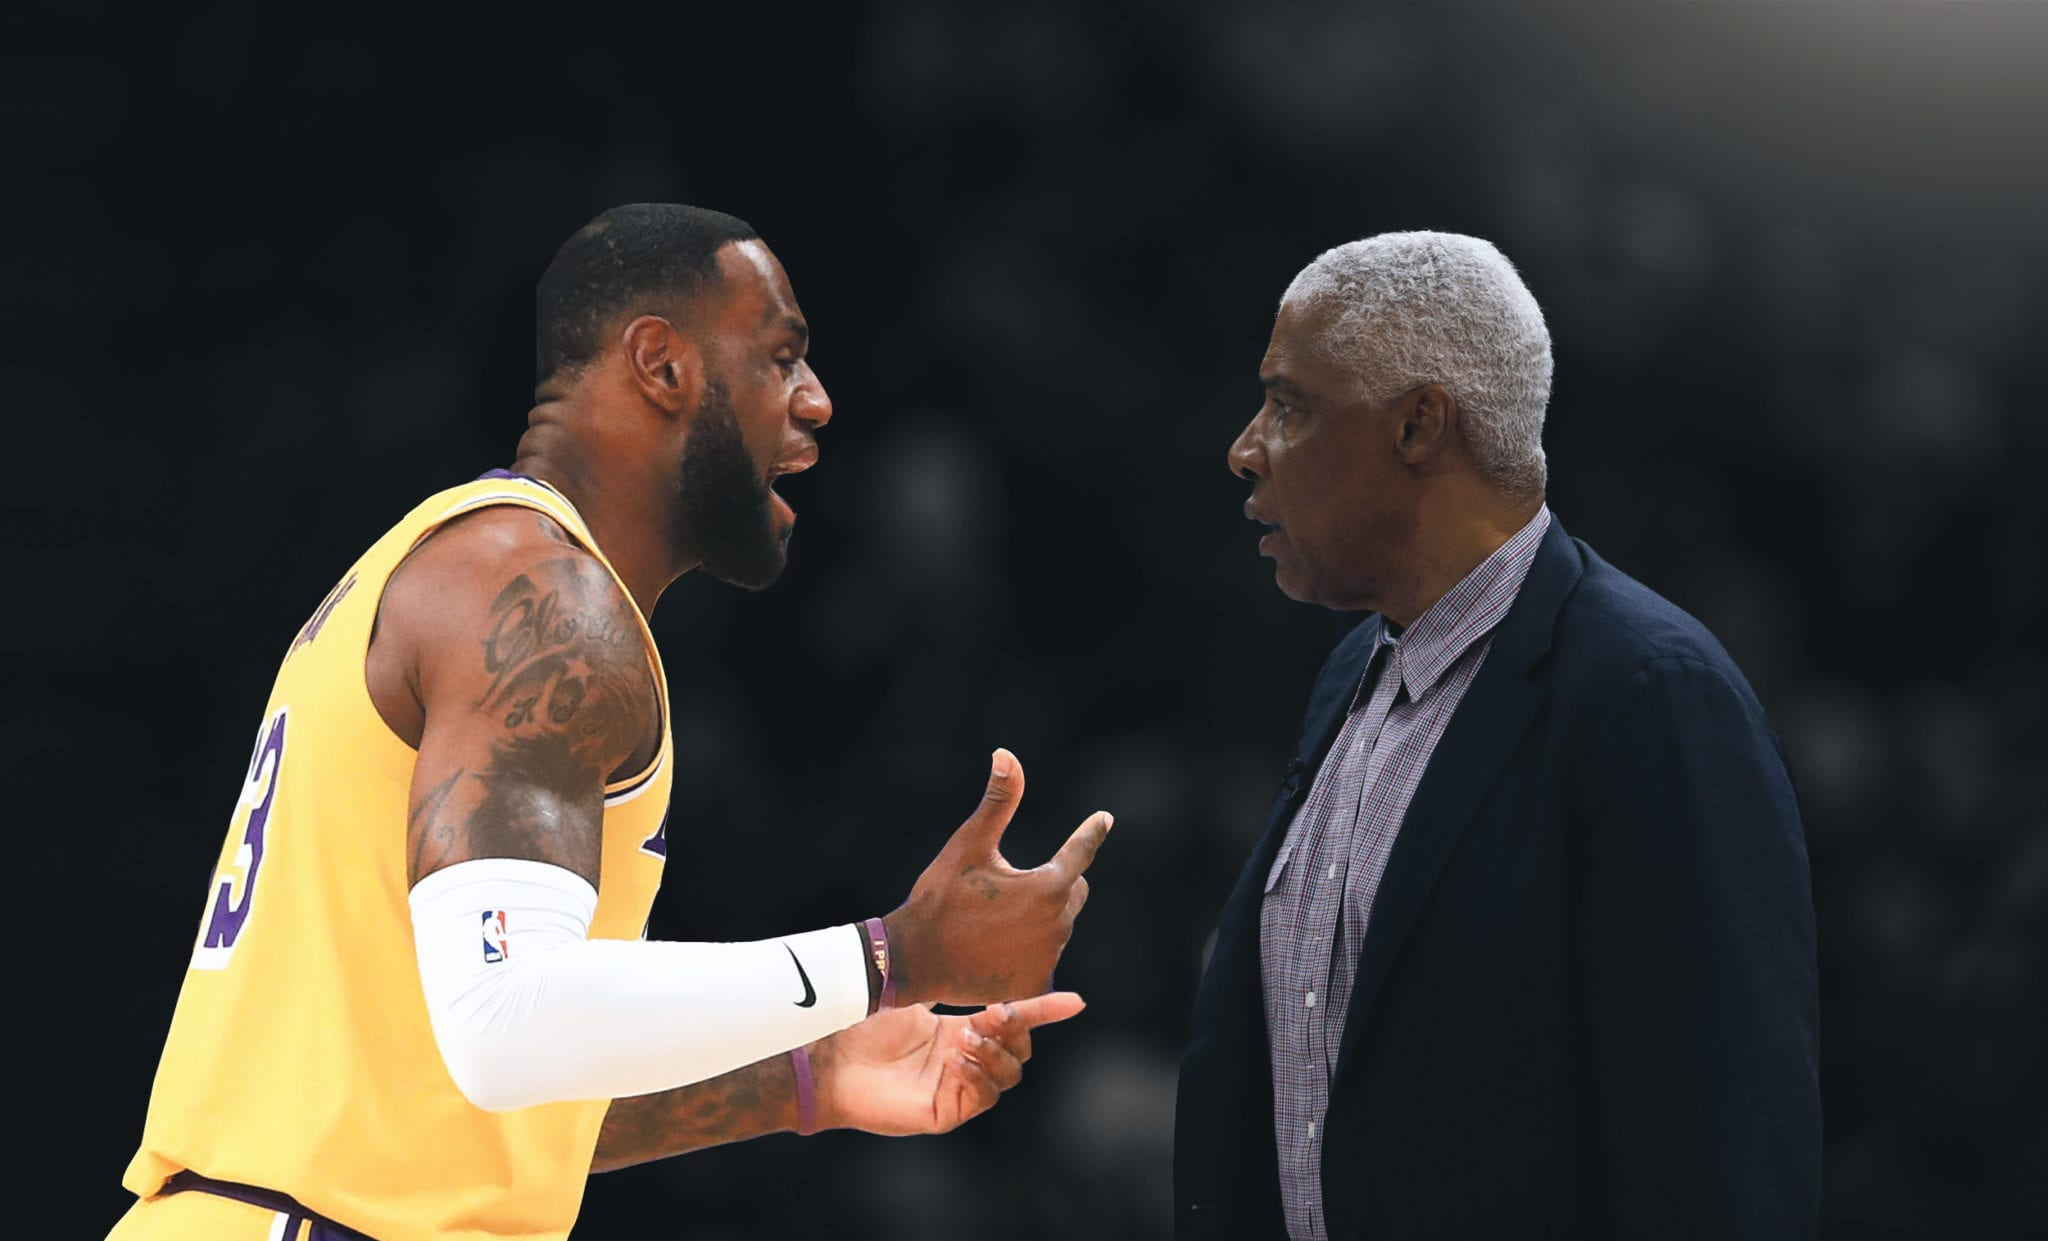 Dr. J Explains Why He Snubbed LeBron From His All-Time First and Second Teams